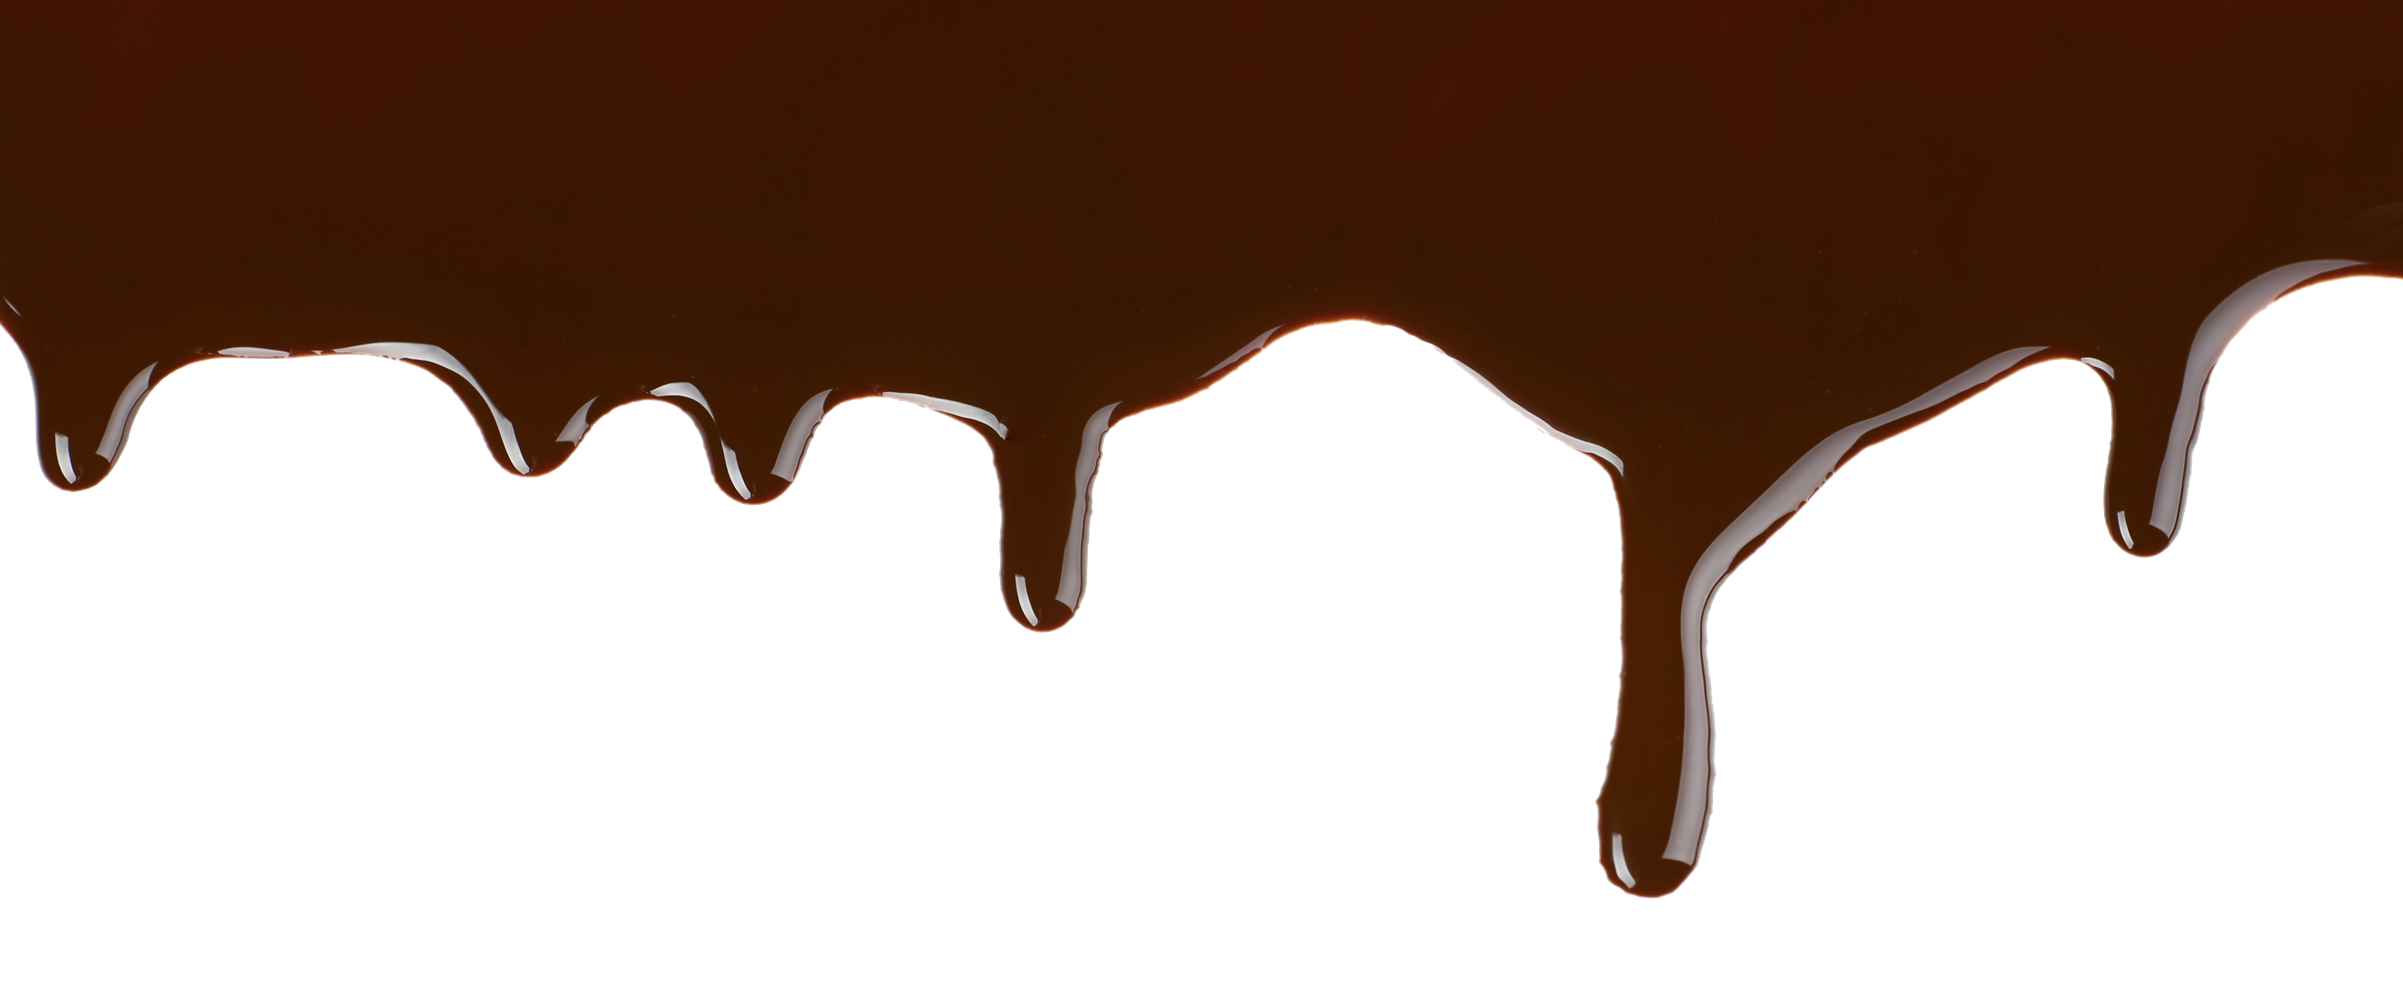 Melted Chocolate PNG Image.